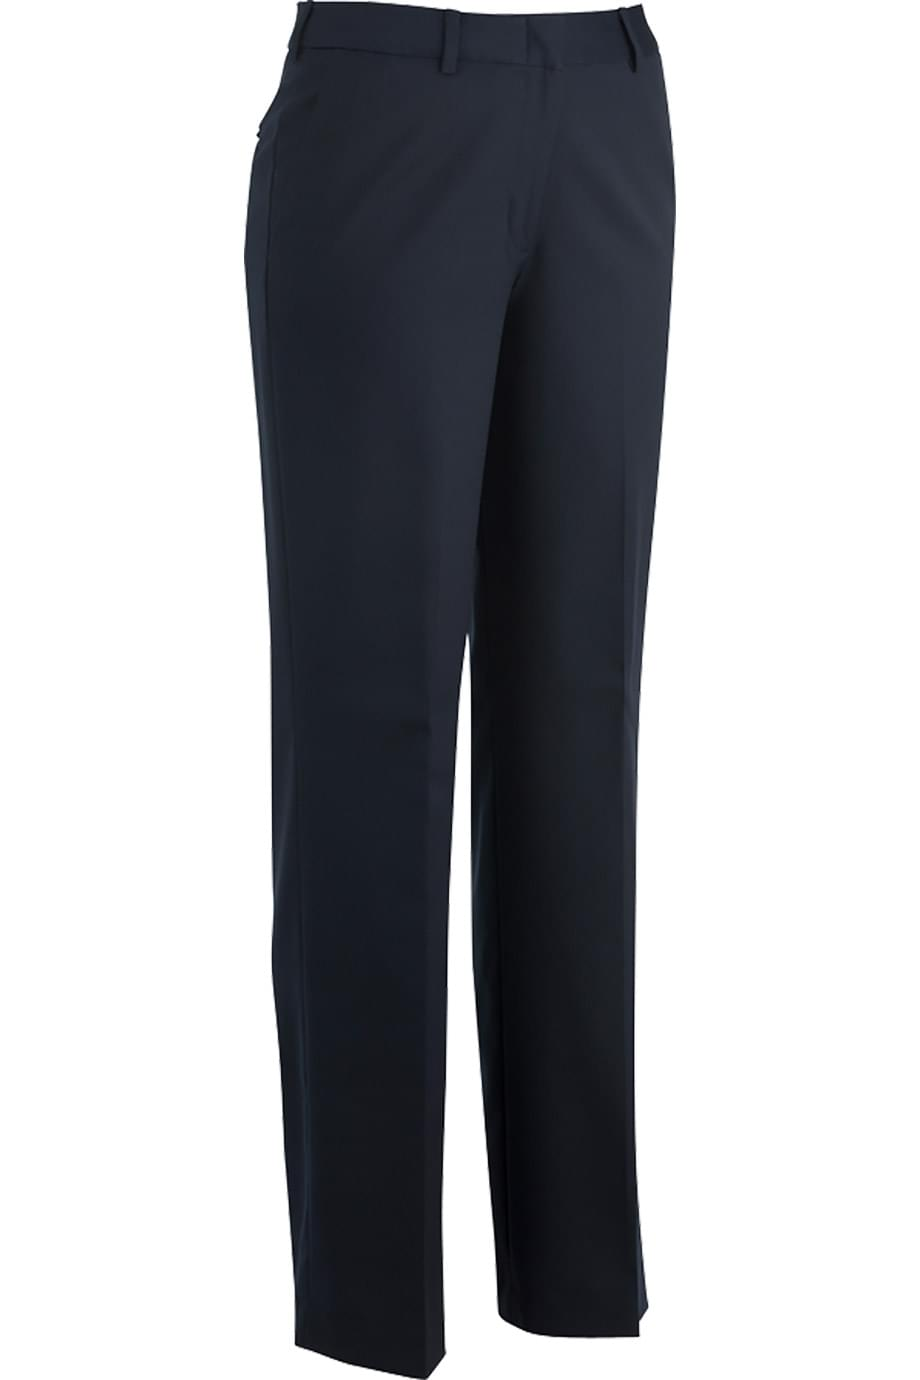 LADIES' FLAT FRONT DRESS PANT WITH RUSSEL FABRIC